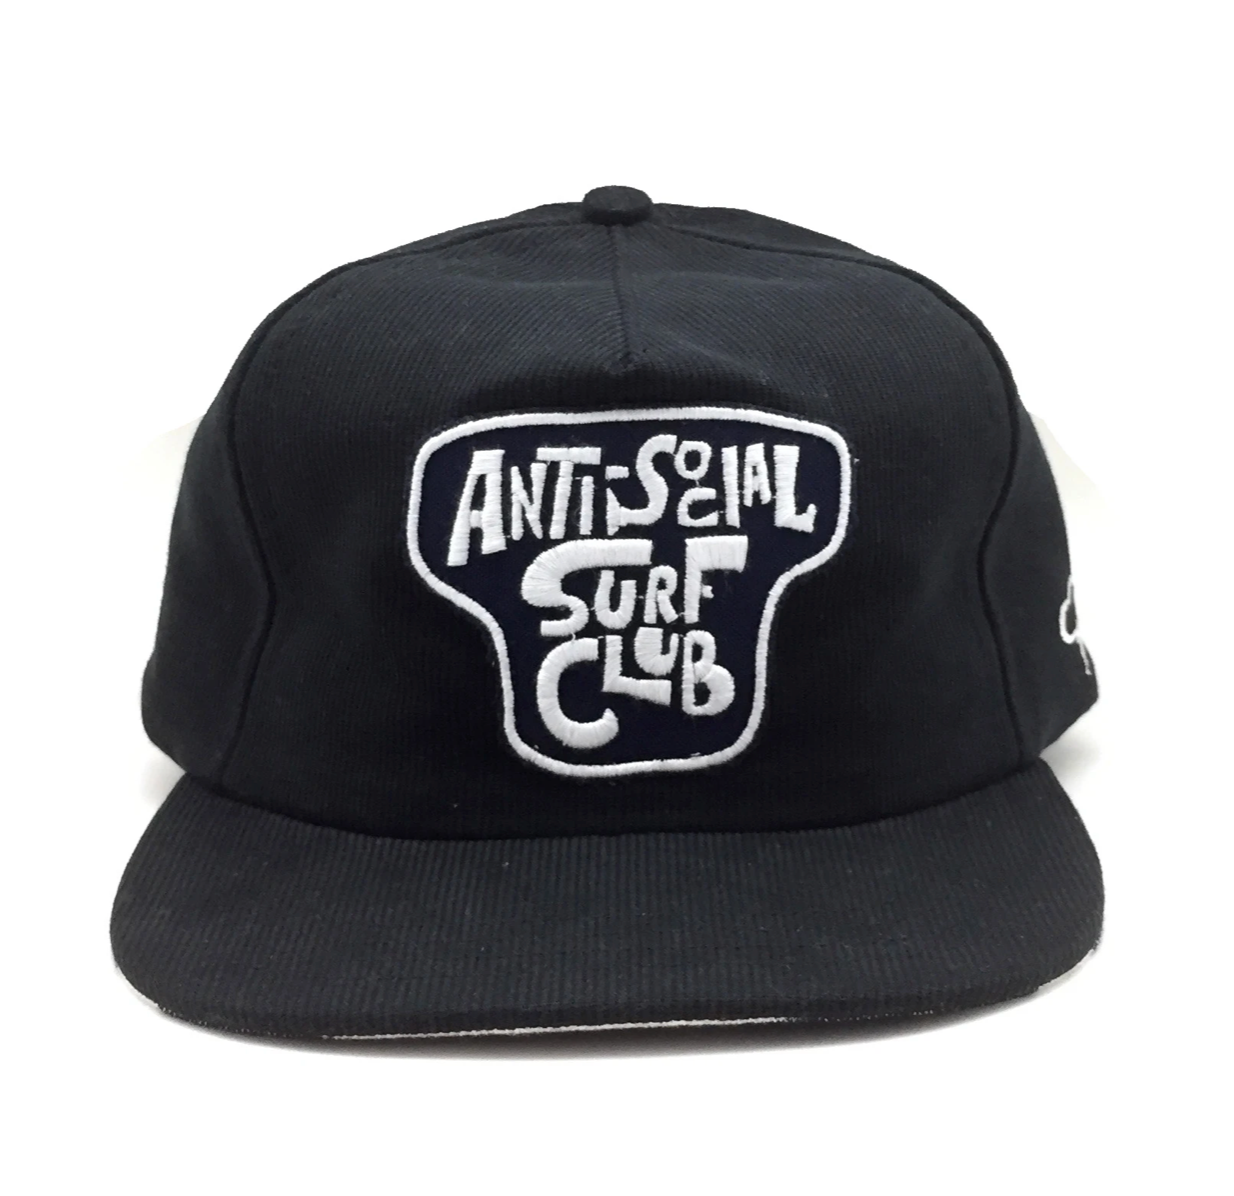 The Ampal Creative - Anti Social Surf Club II - Snapback Black